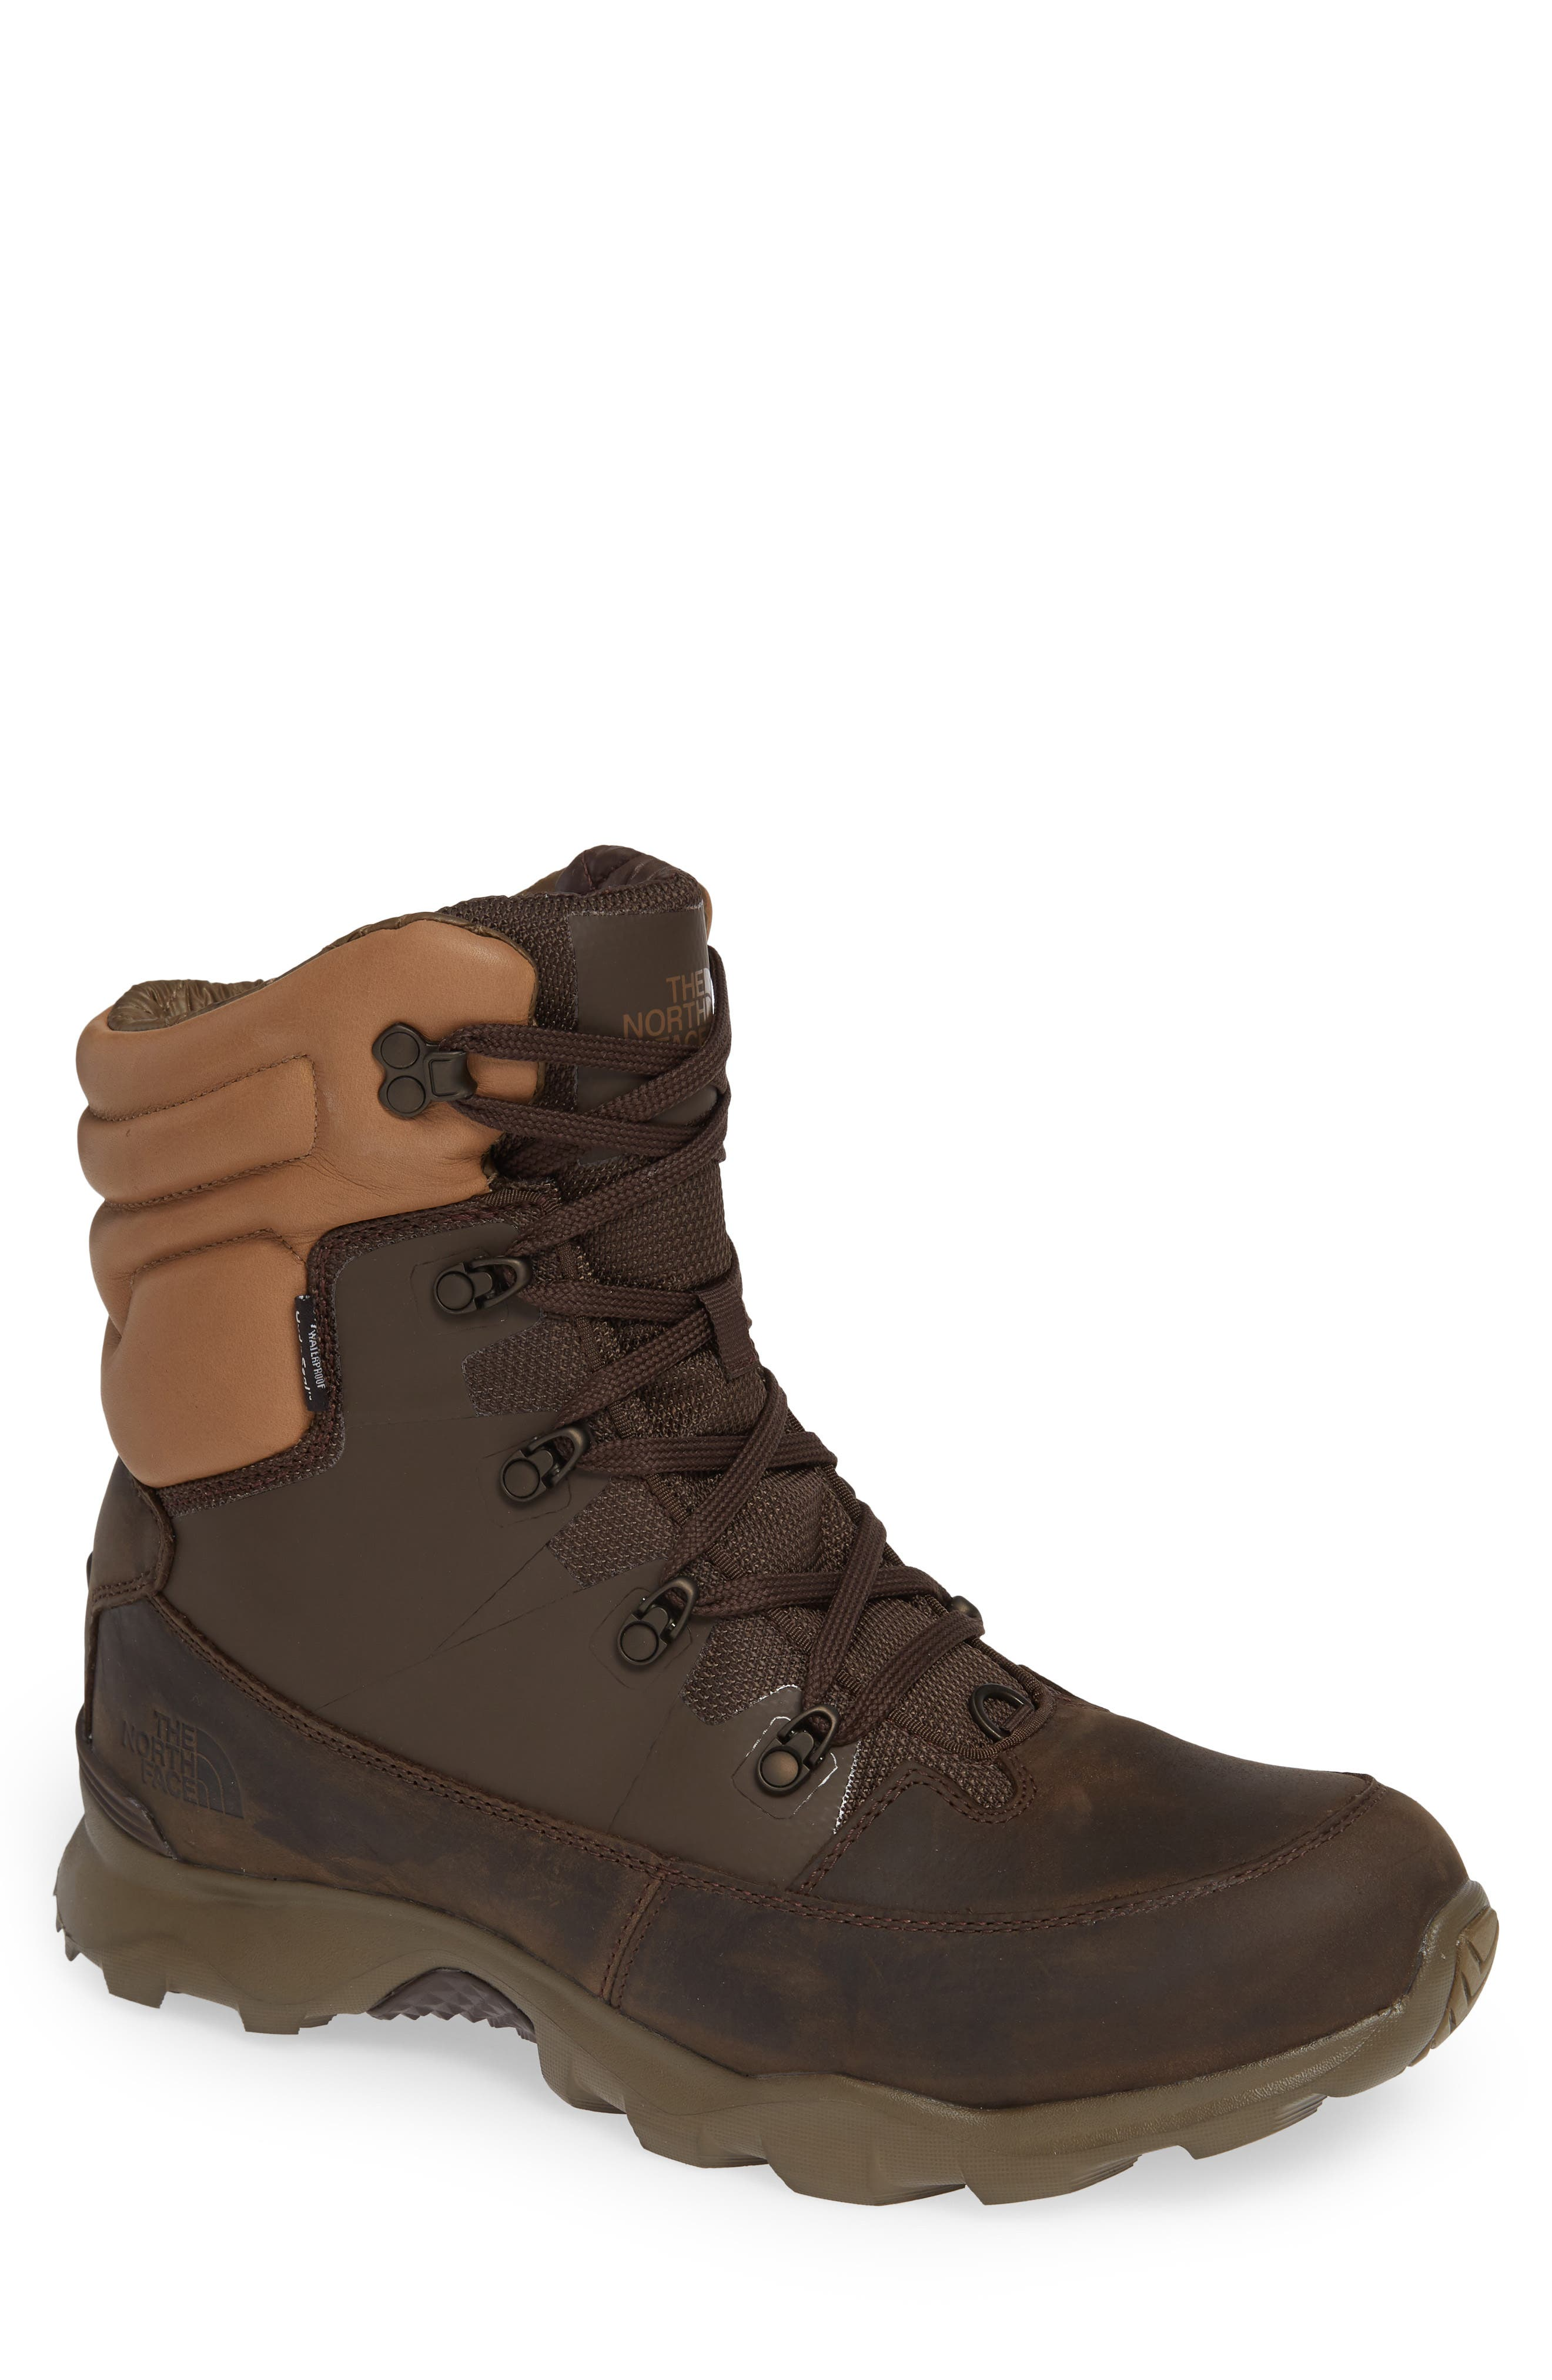 ThermoBall Lifty Snow Boot,                         Main,                         color, CHOCOLATE BROWN/ CARGO KHAKI